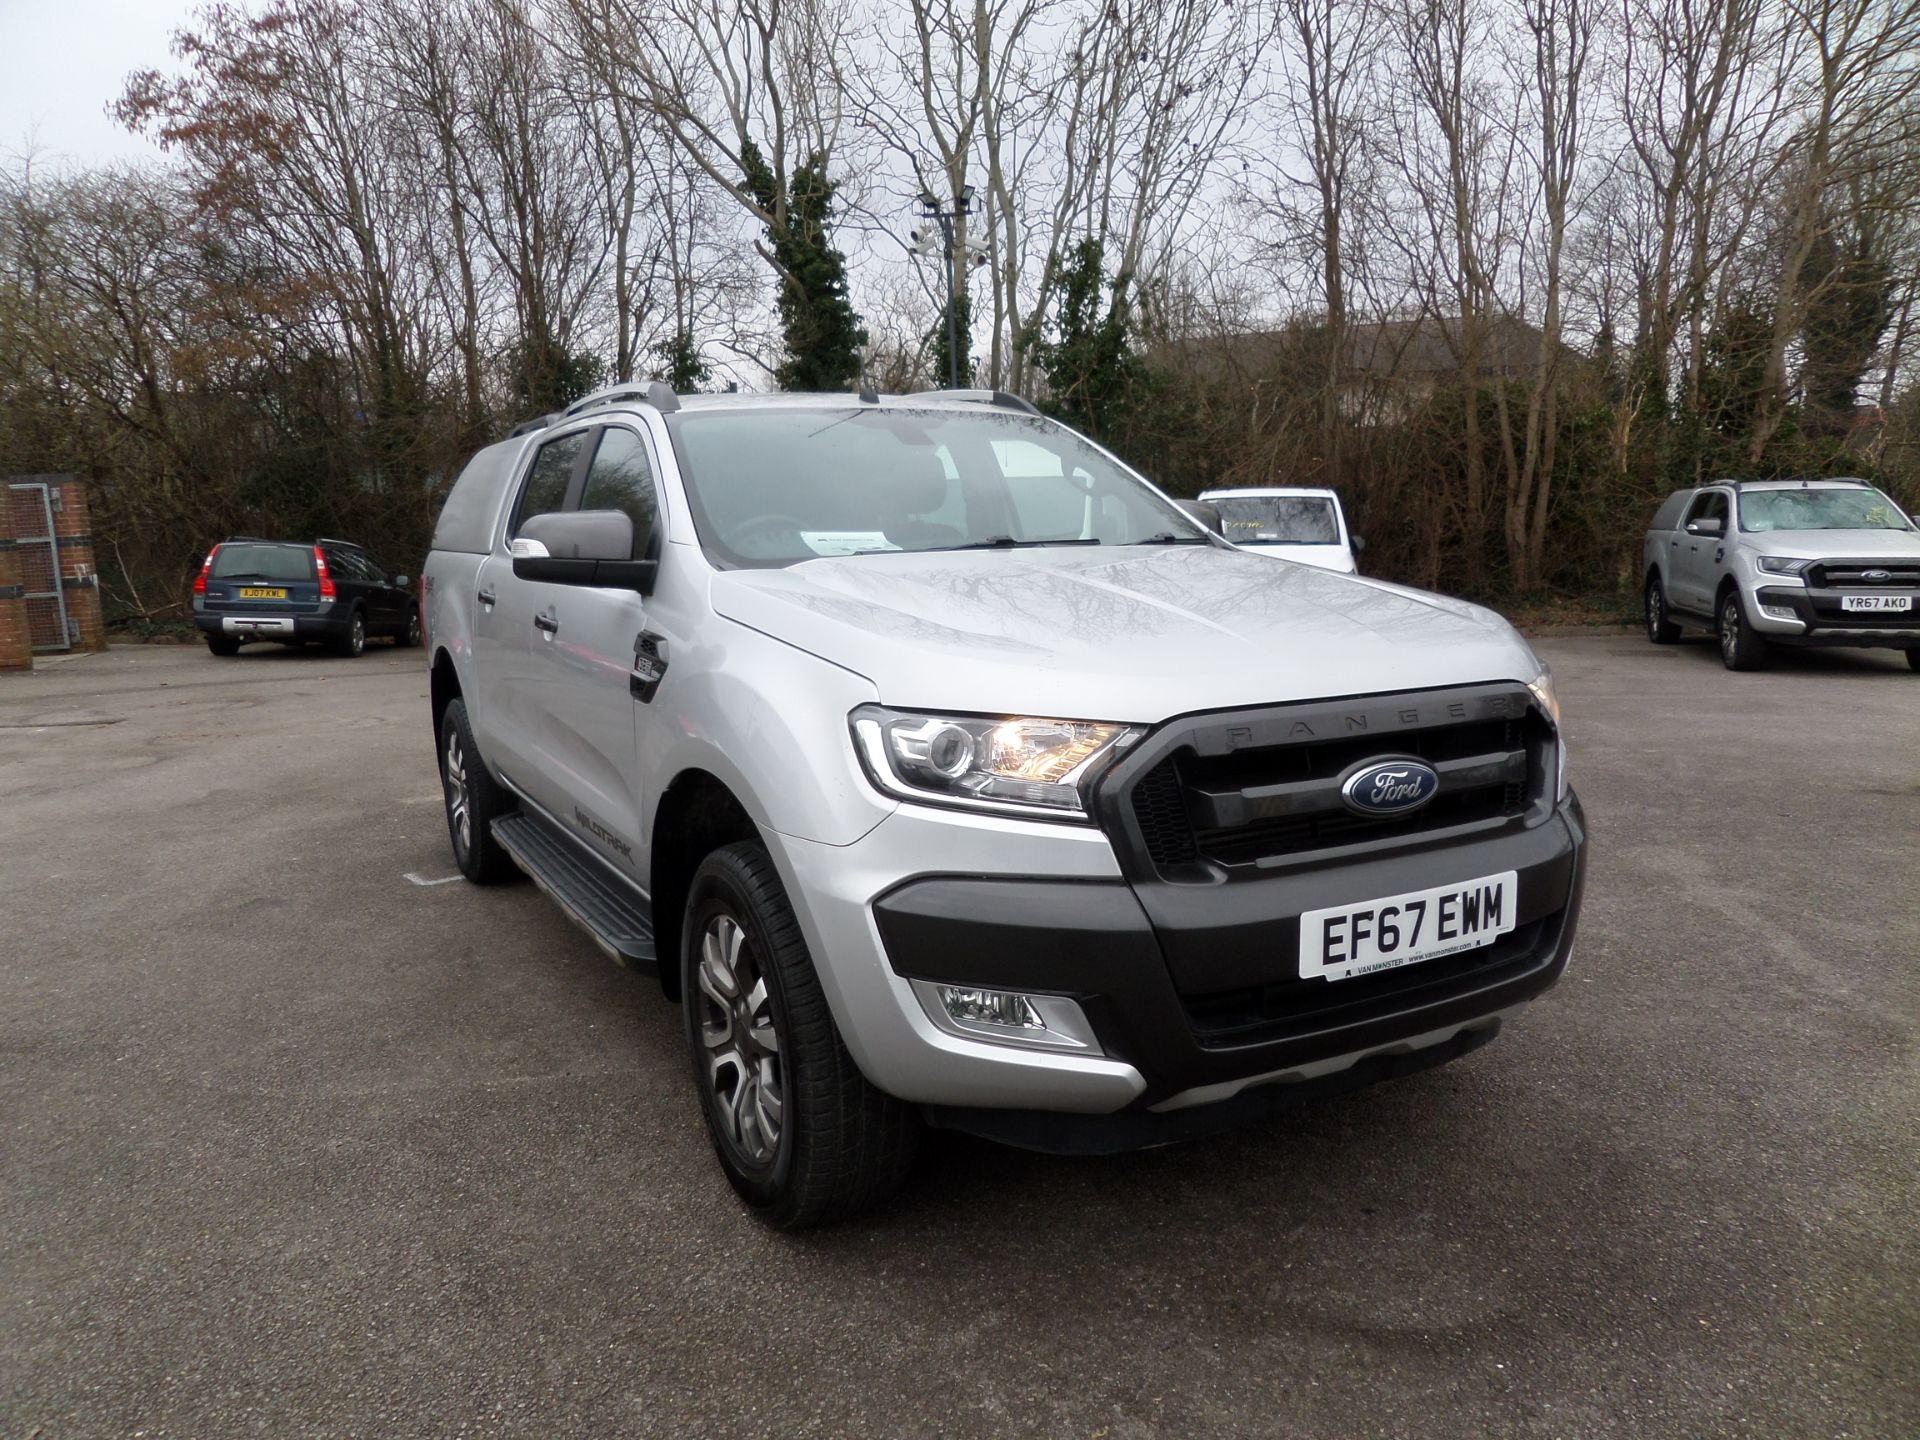 2017 Ford Ranger Pick Up Double Cab Wildtrak 3.2 Tdci 200 Euro 6 (EF67EWM)